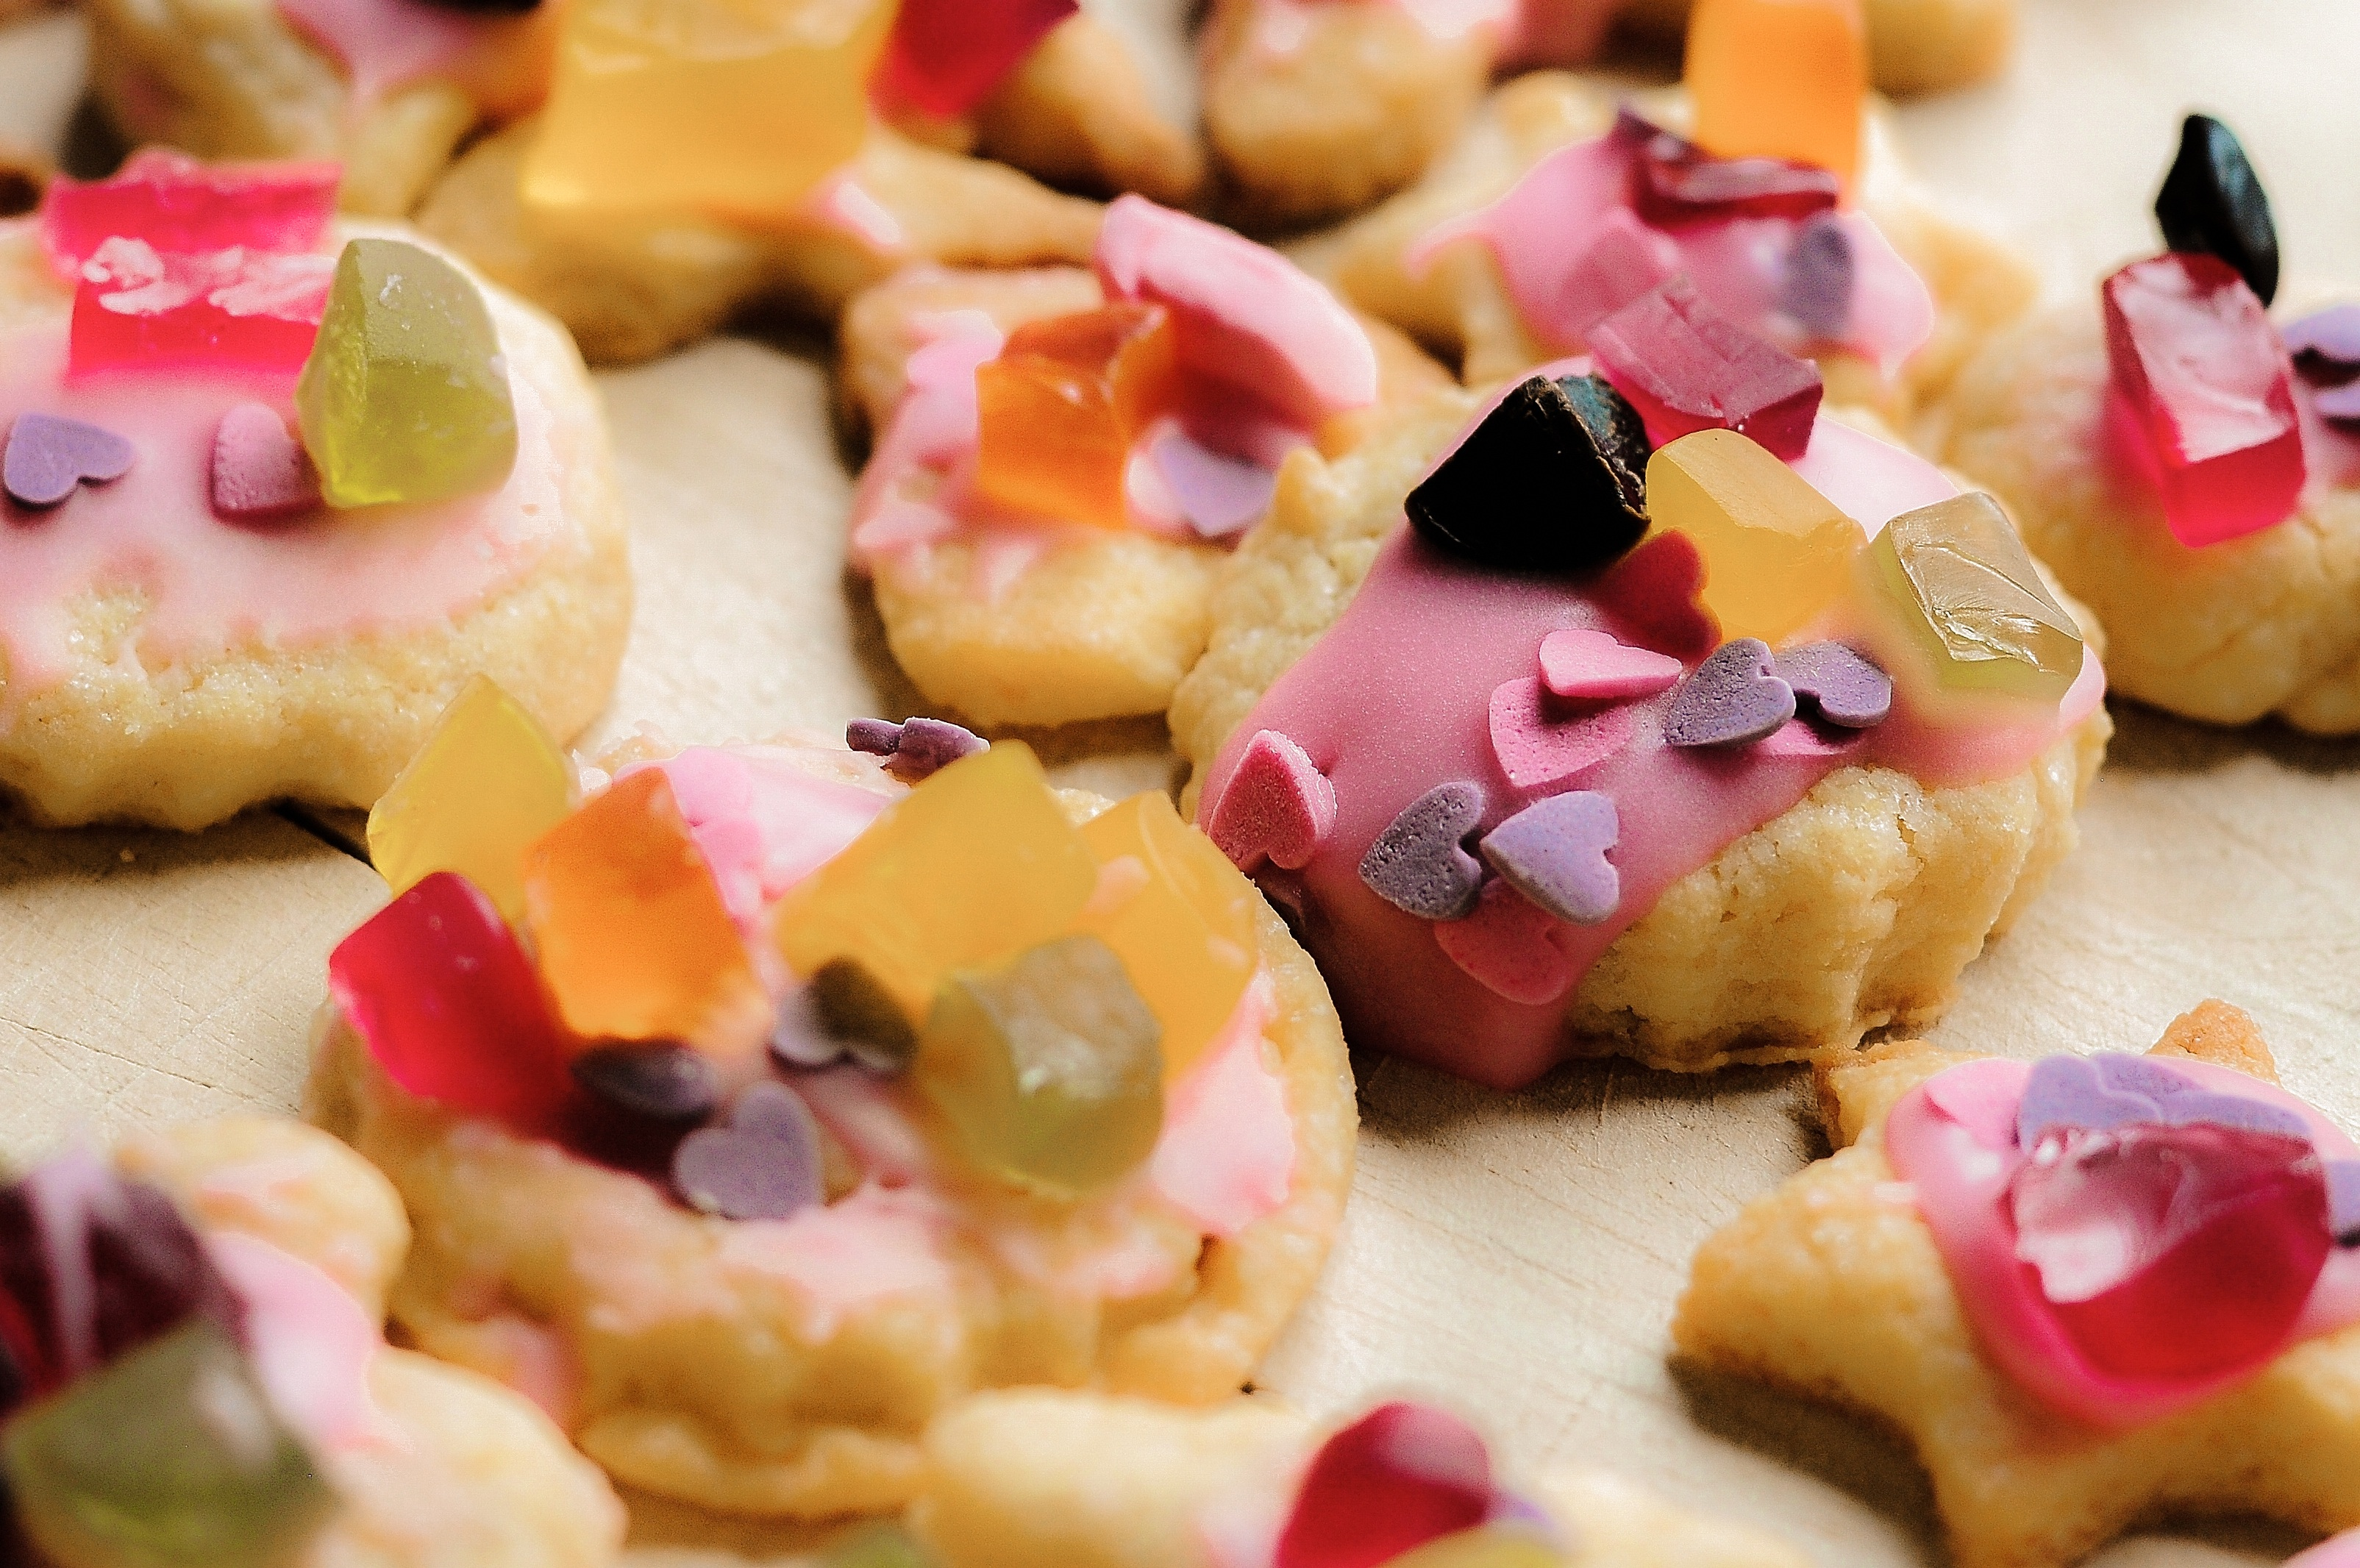 Candies on the cookies photo